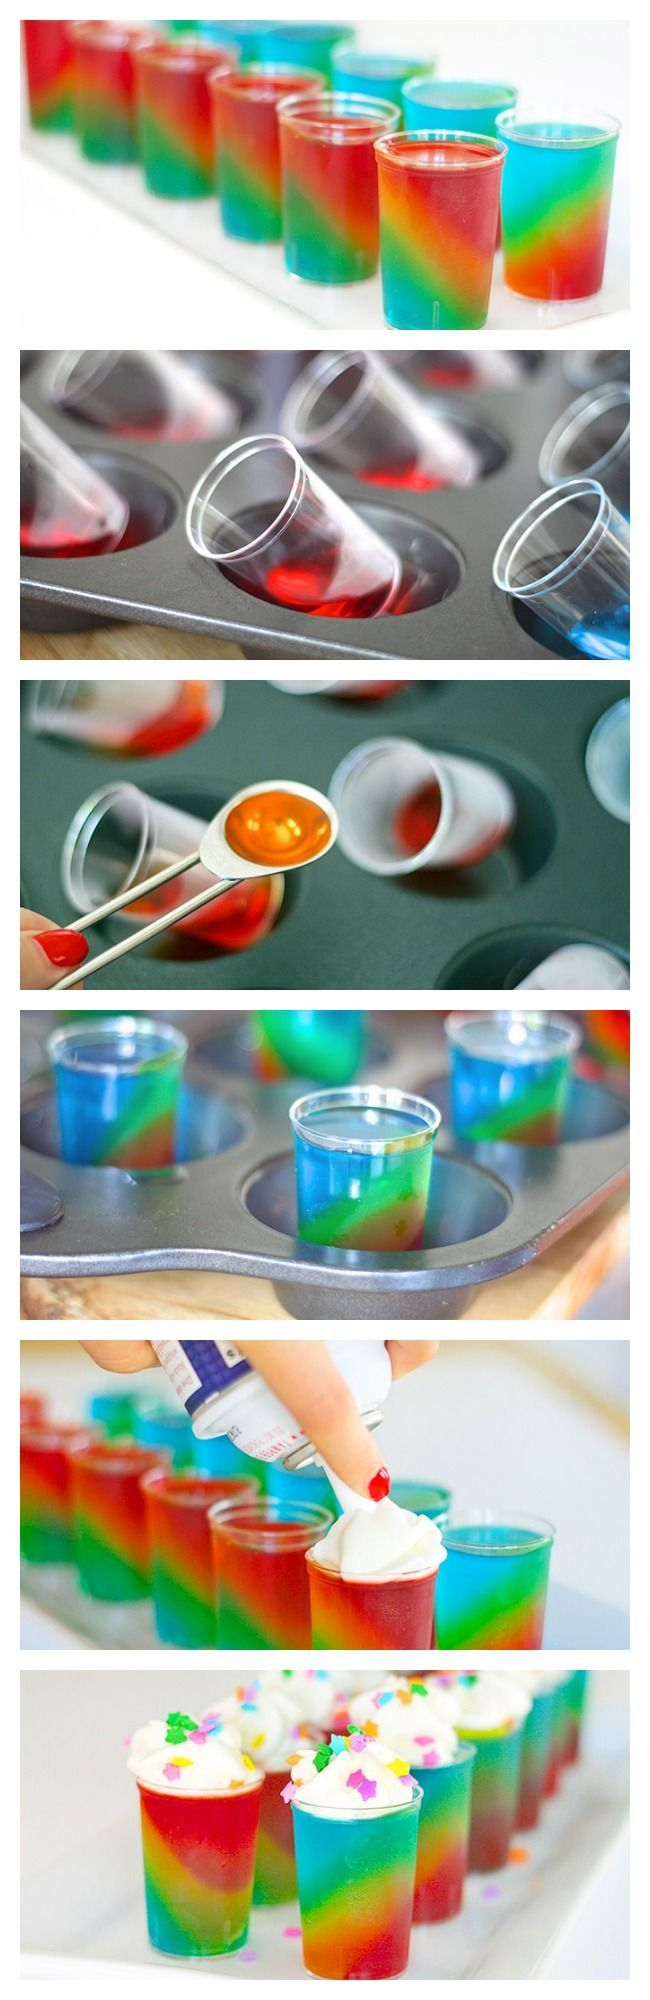 Slanted Rainbow Jelly Shots...you have to ask yourself if this is worth all that work...and the answer would be HELL YA!